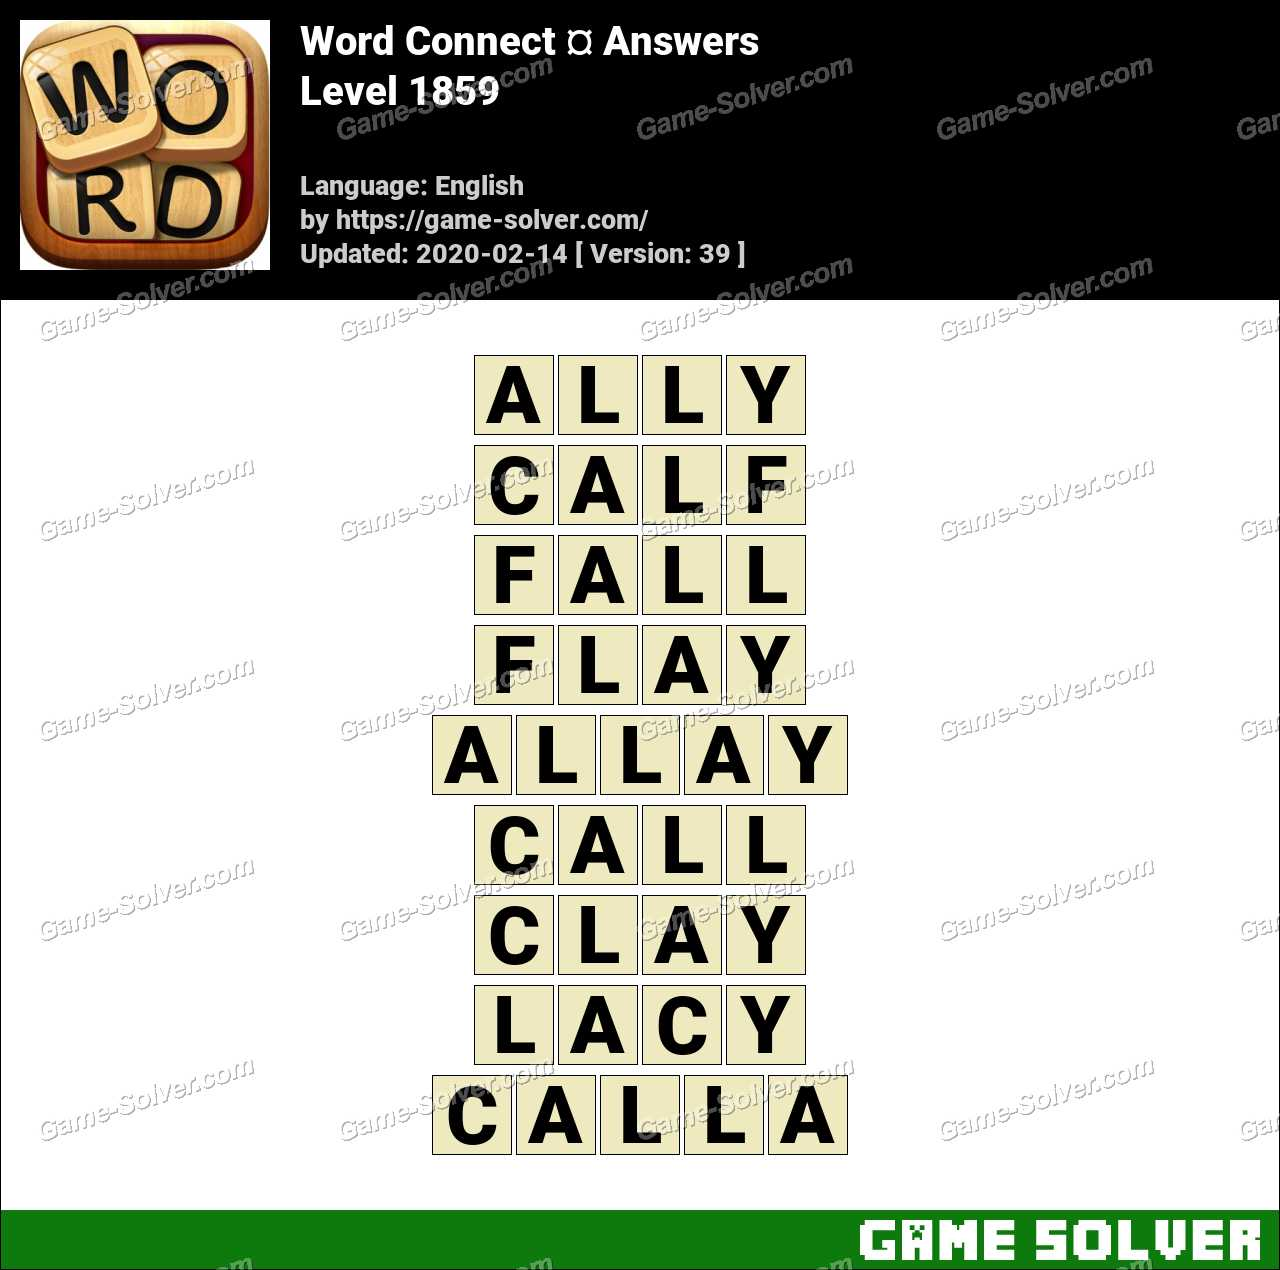 Word Connect Level 1859 Answers